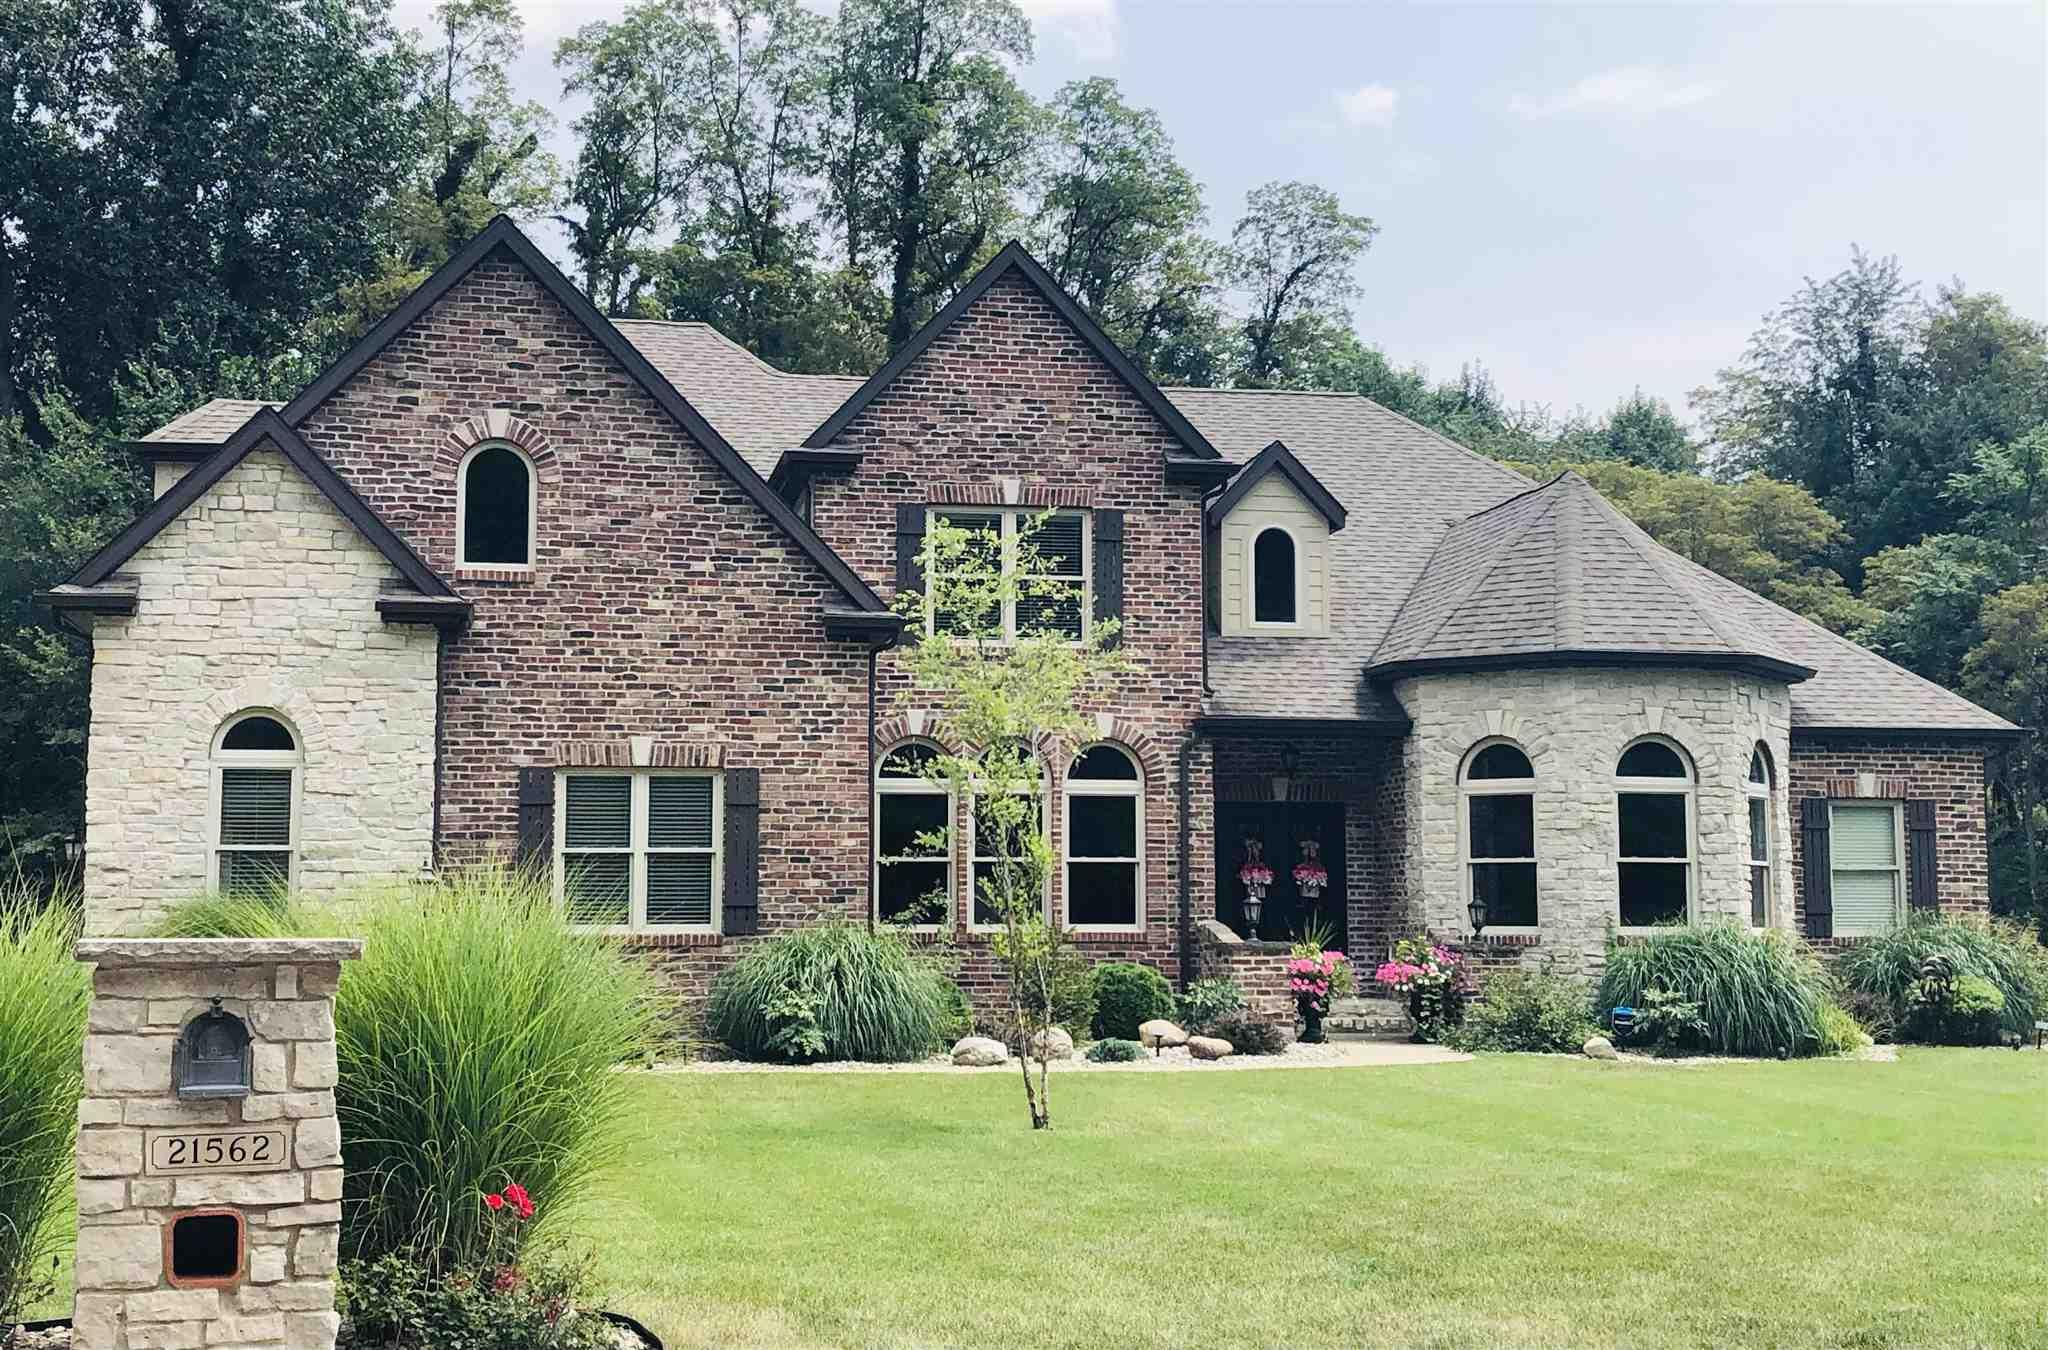 21562 Goldenmaple South Bend, IN 46628